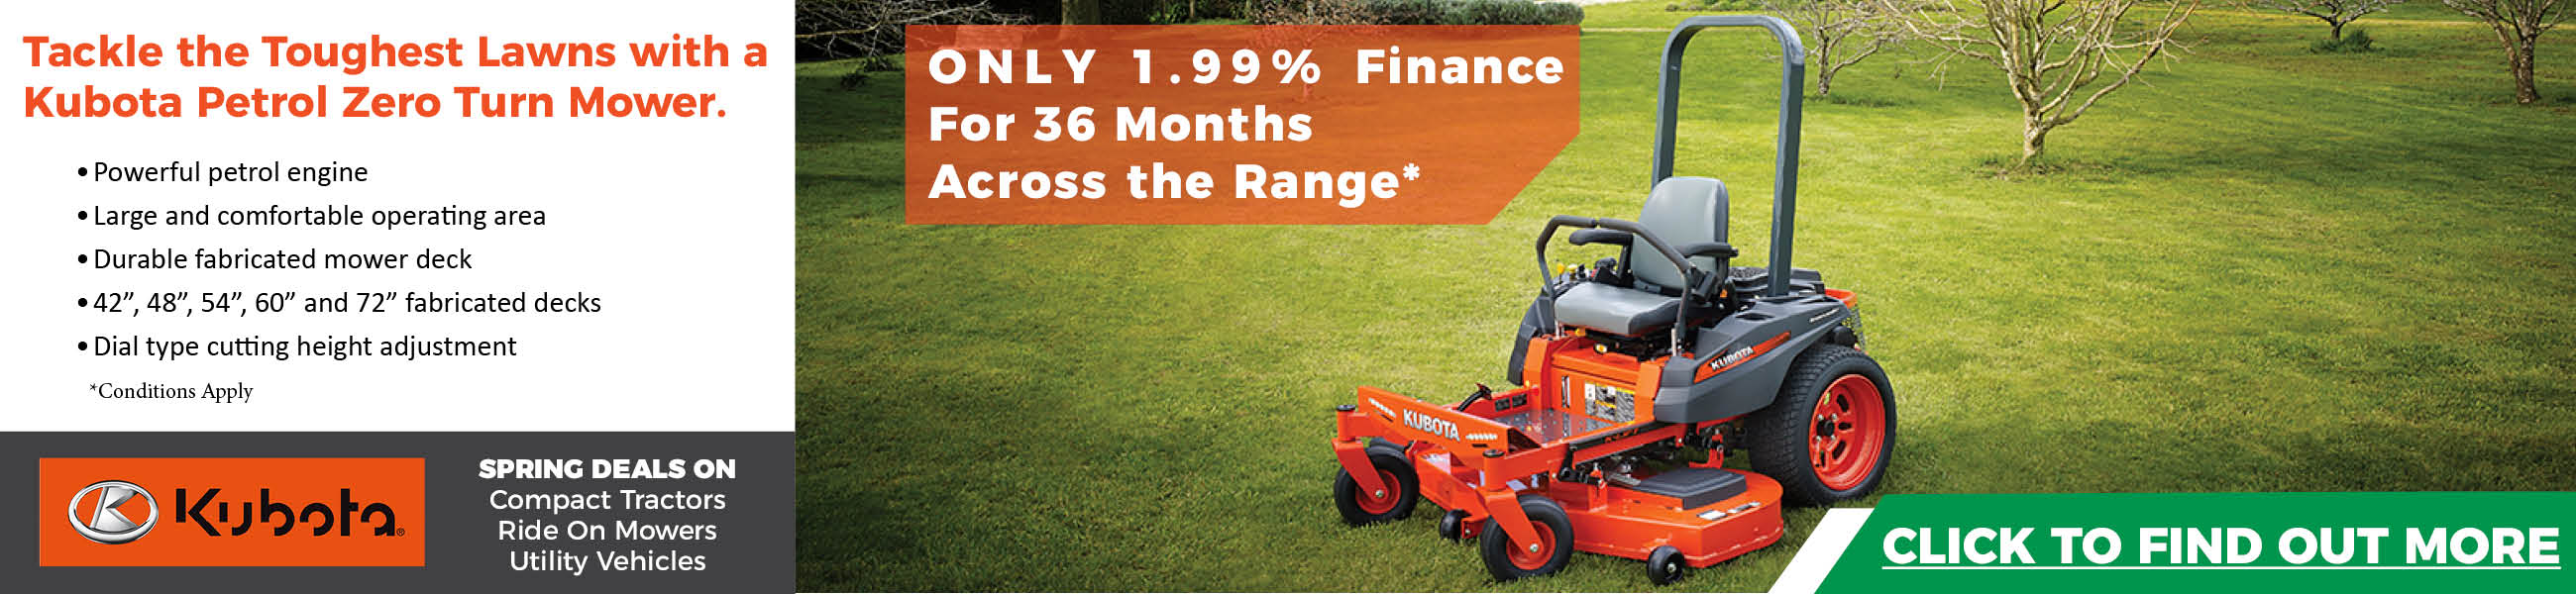 Kubota Zero Turn Special Deal